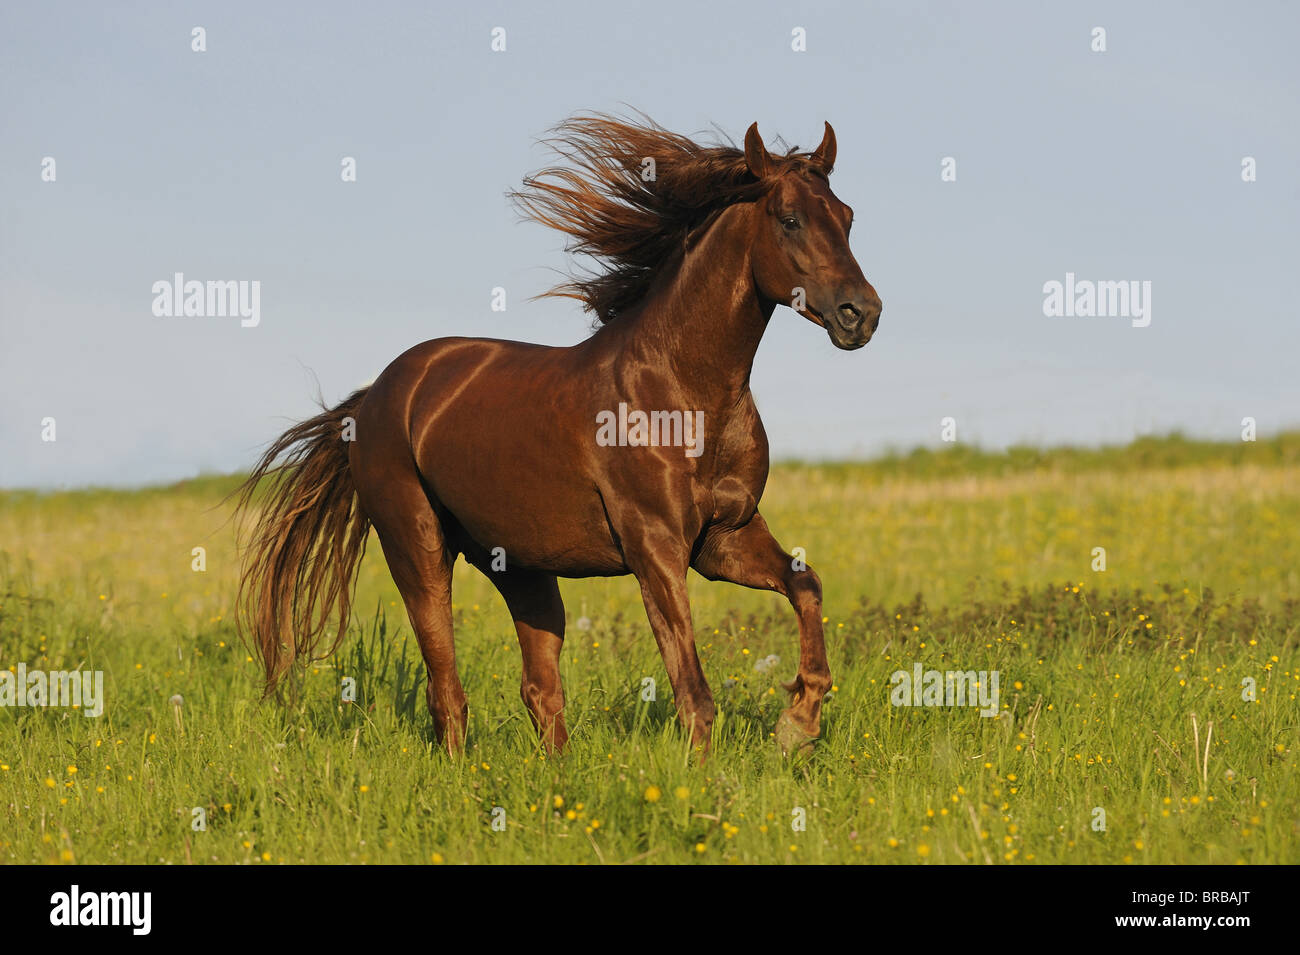 American Saddlebred (Equus ferus caballus), stallion in a gallop on a meadow. - Stock Image